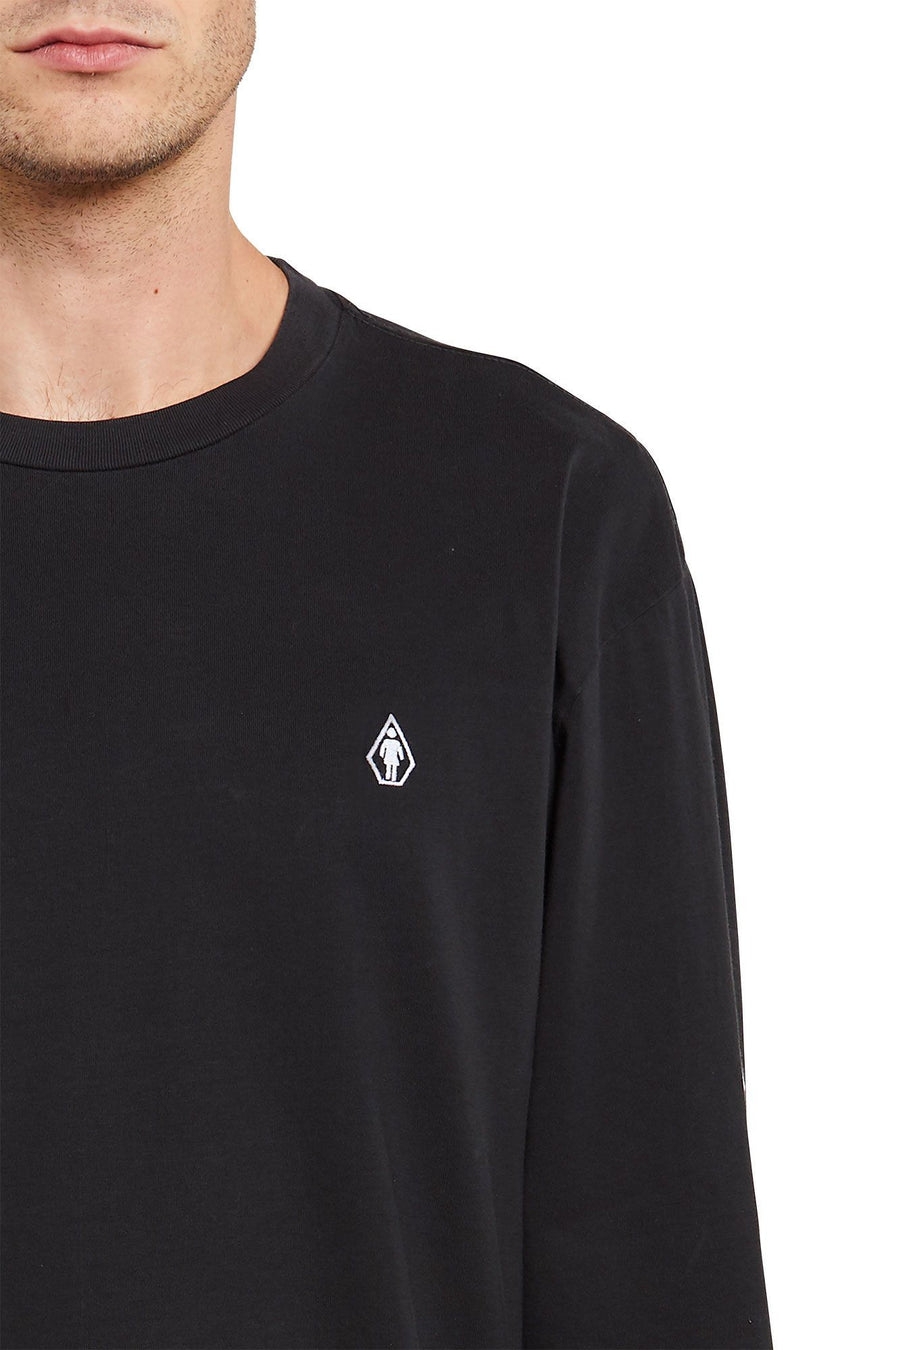 VOLCOM X GIRL SKATEBOARDS Long Sleeve T-Shirt Black MENS APPAREL - Men's Long Sleeve T-Shirts Volcom S